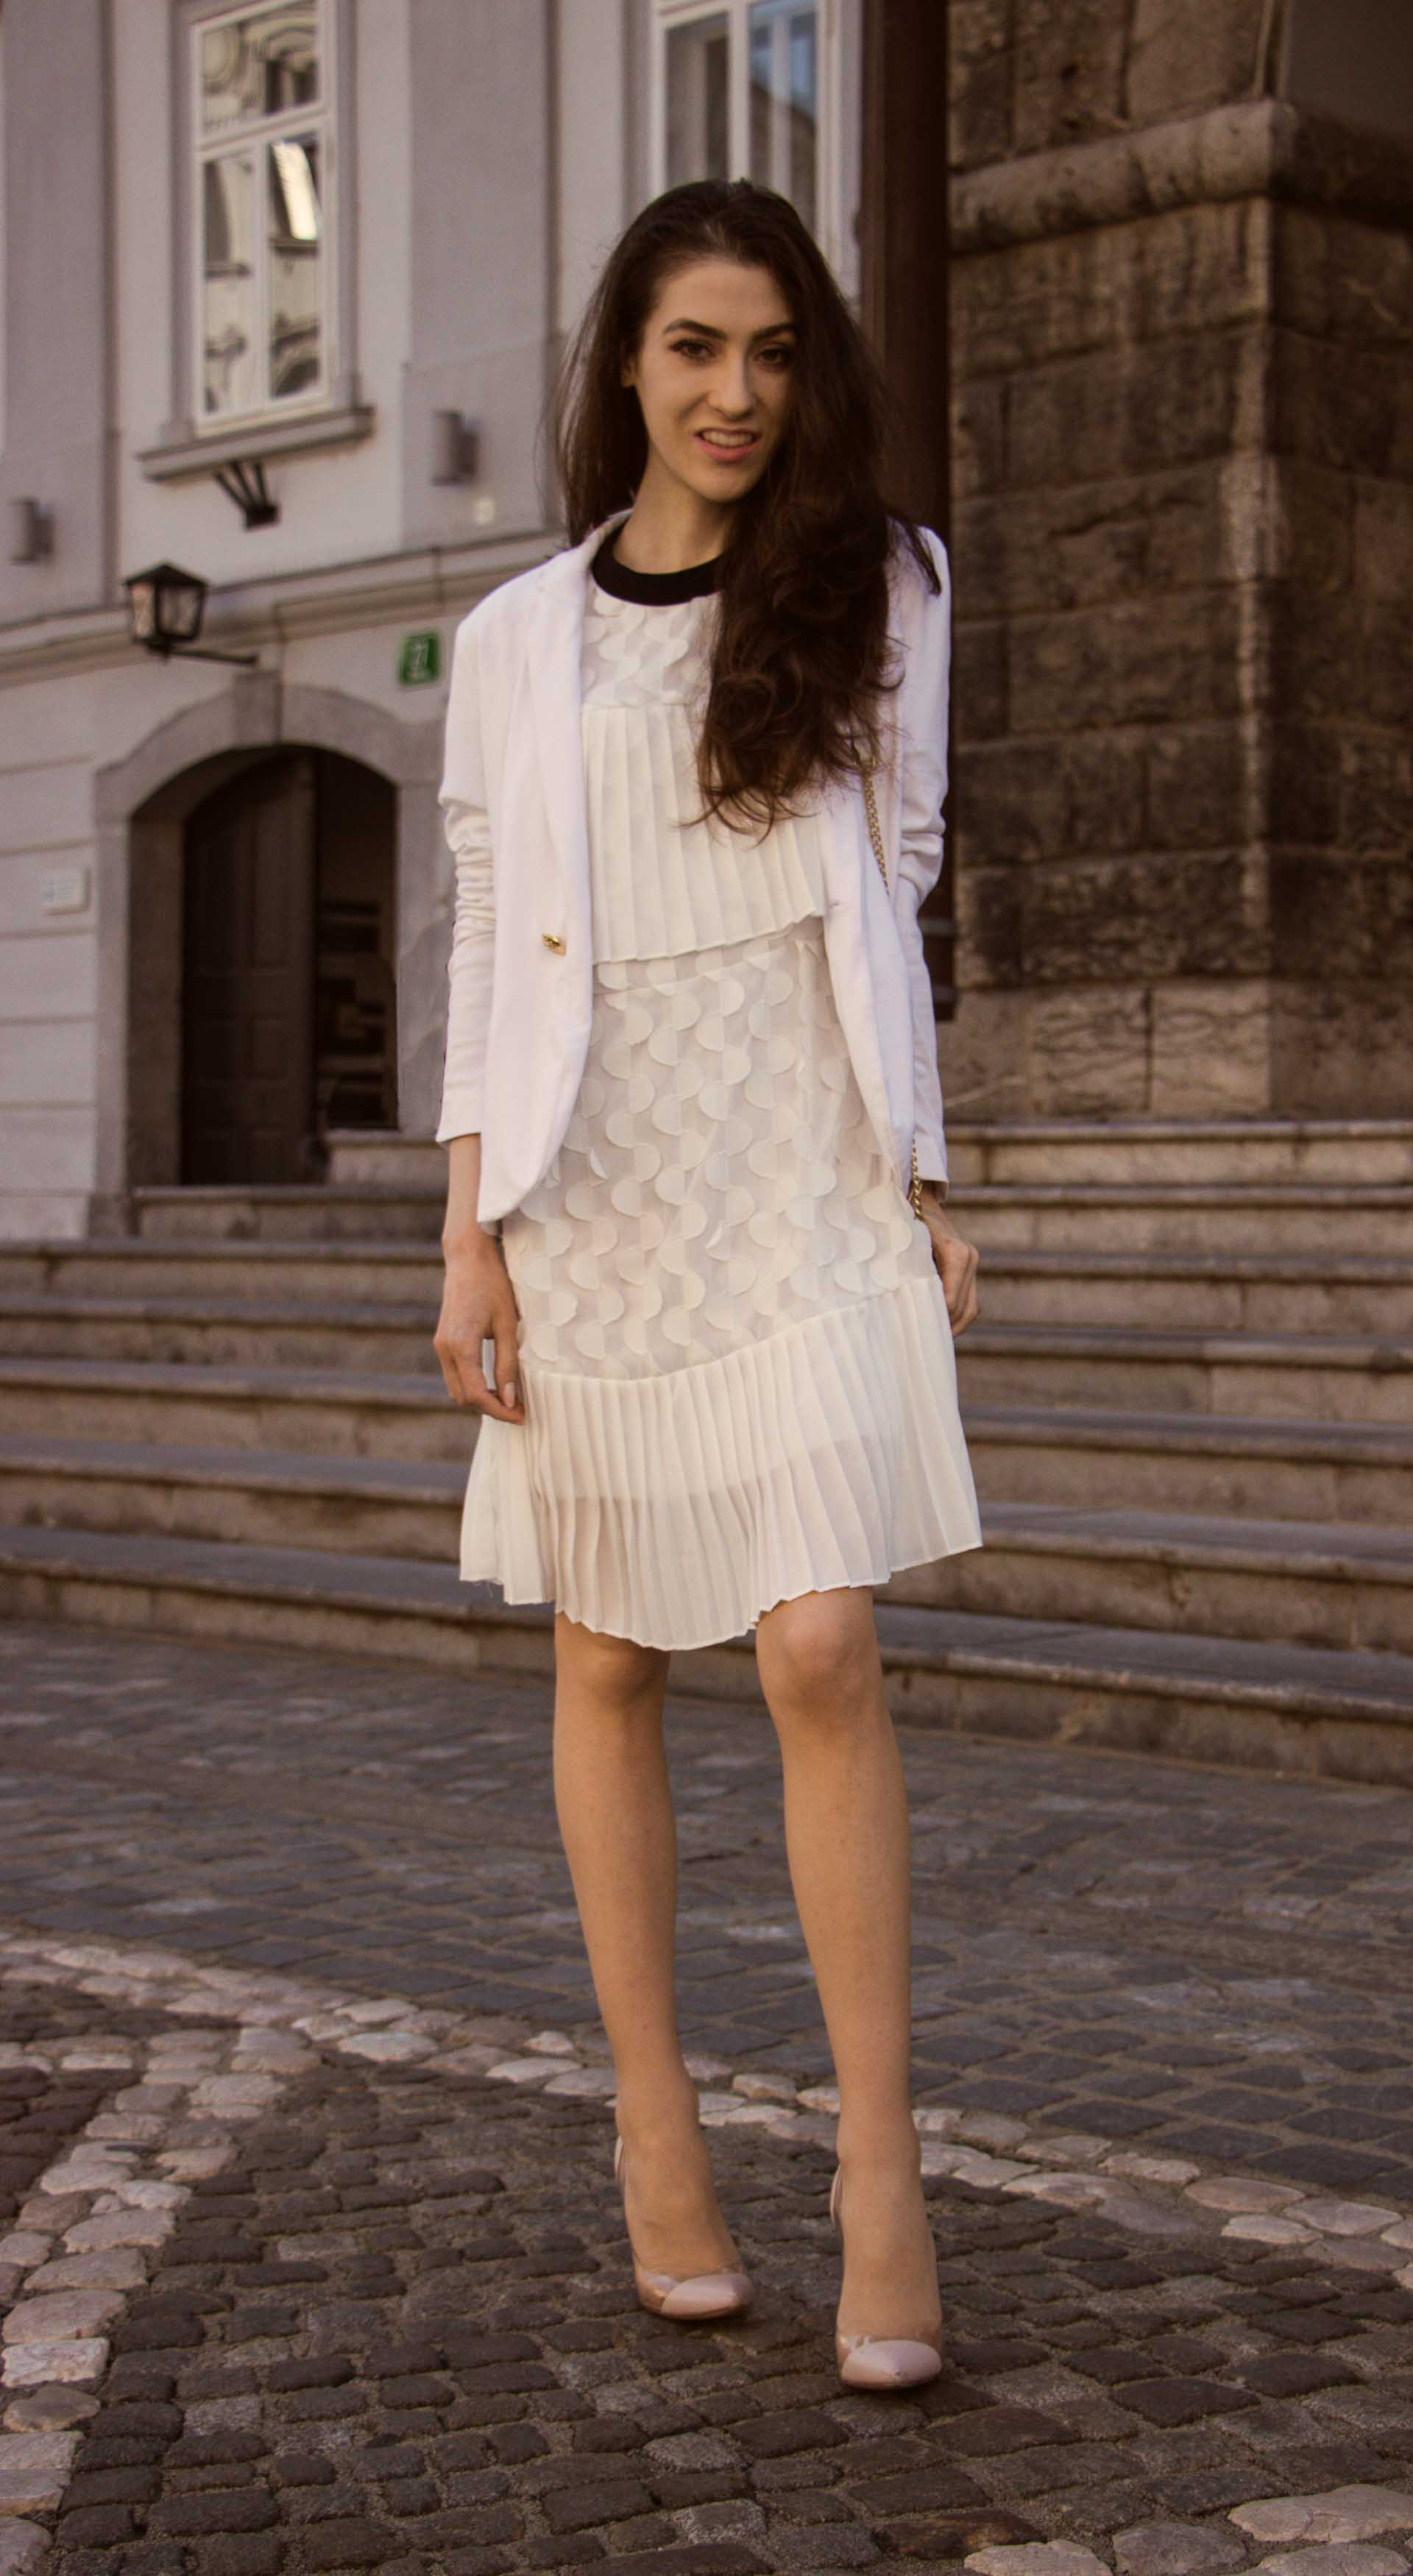 Veronika Lipar Fashion Blogger of Brunette from Wall Street wearing Storets little white dress, white Balmain blazer, Gianvito Rossi pumps for wedding at city hall